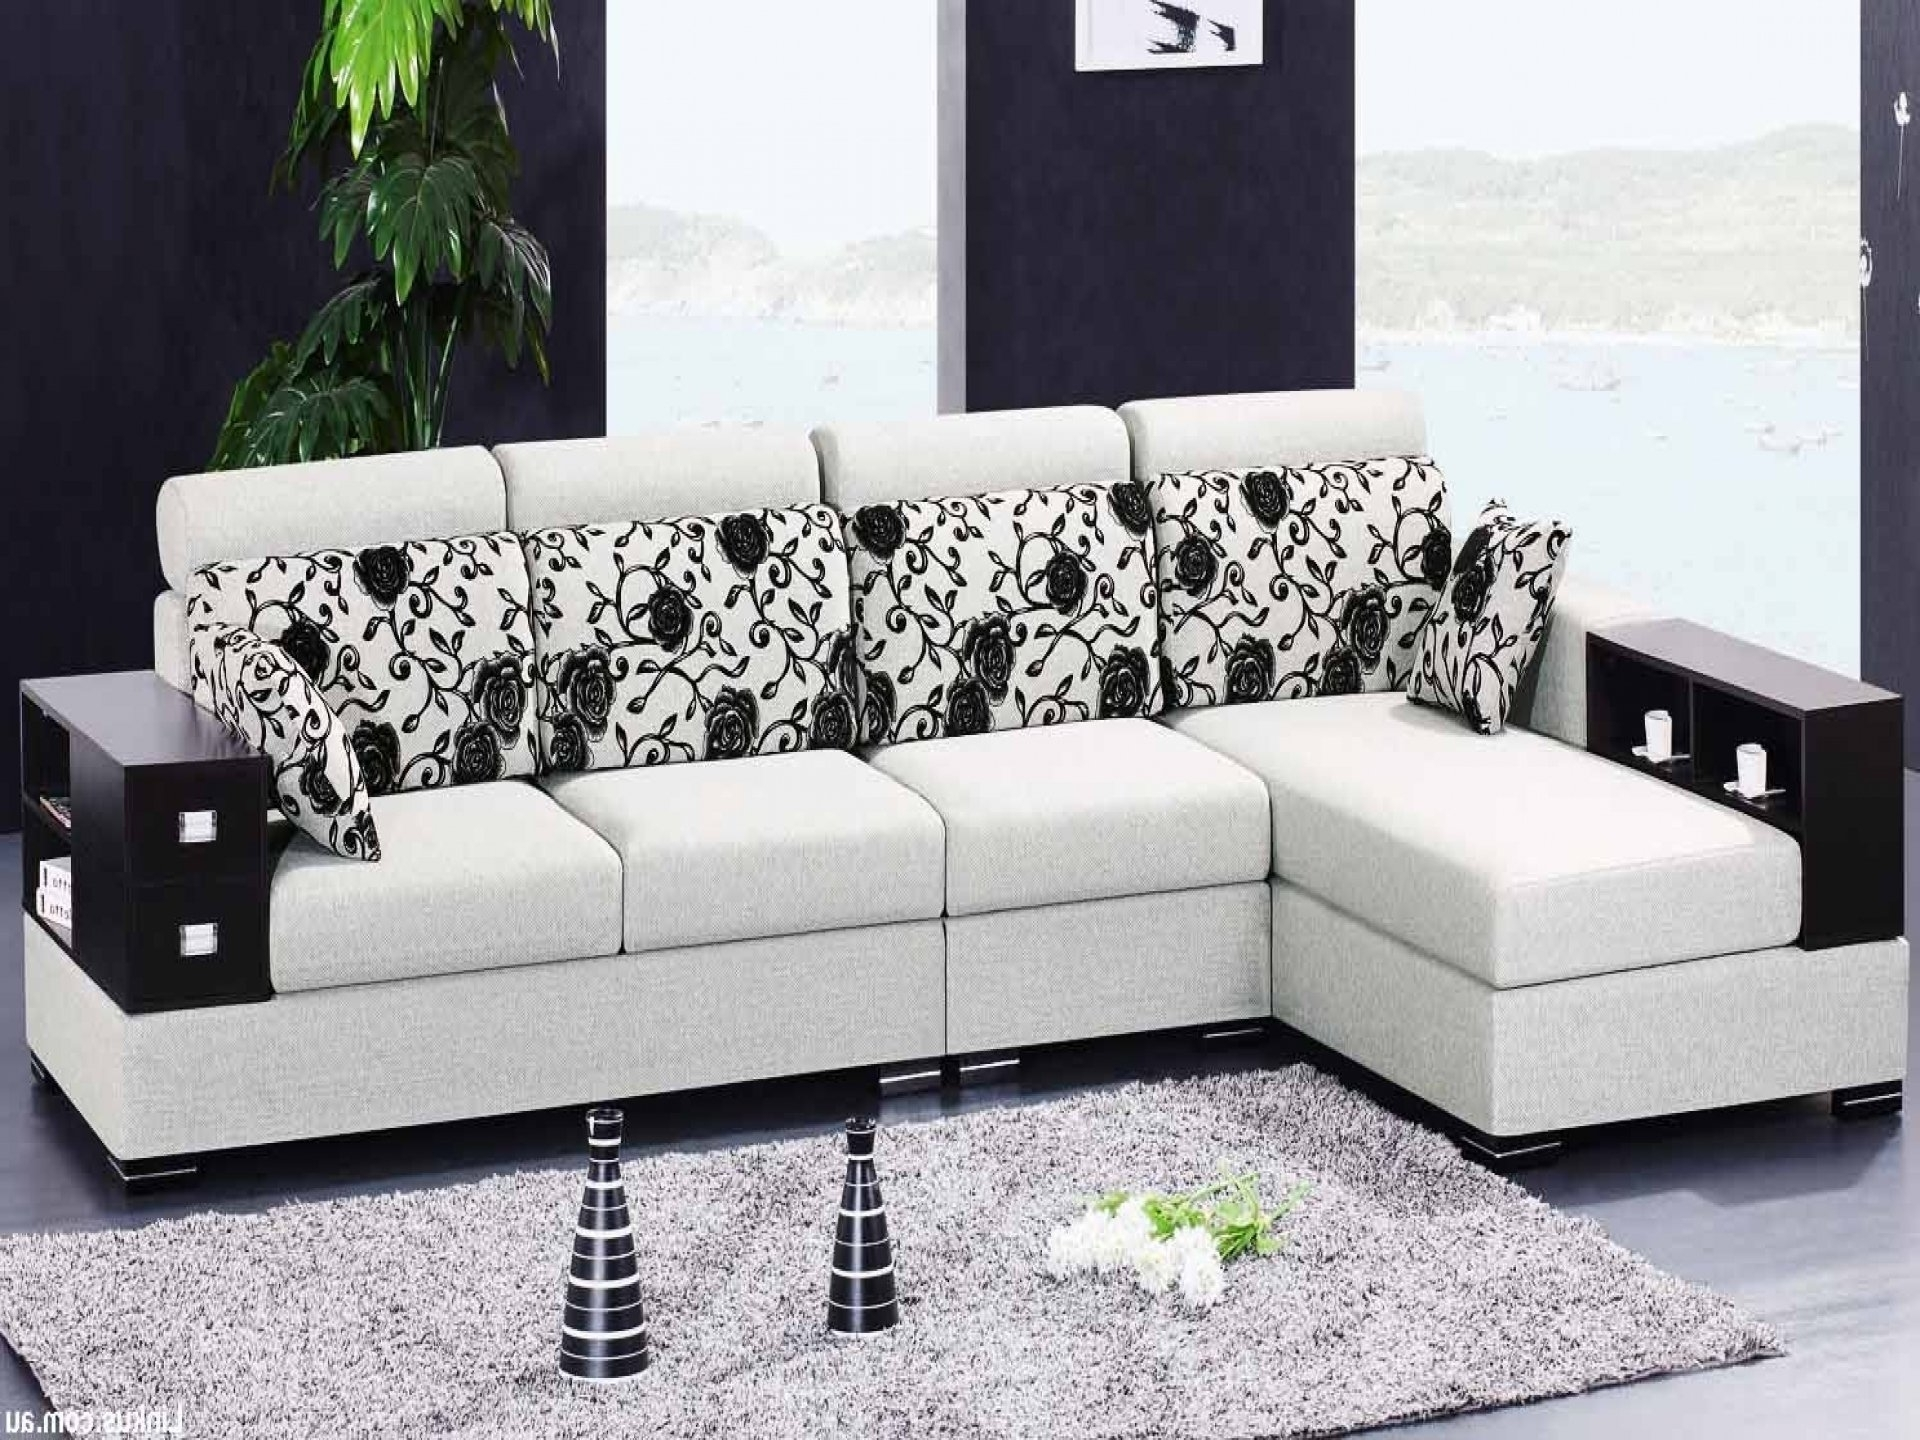 Widely Used L Shaped Sofas Throughout L Shape Sofa Set Designs 24 With L Shape Sofa Set Designs Brostuhl (View 20 of 20)